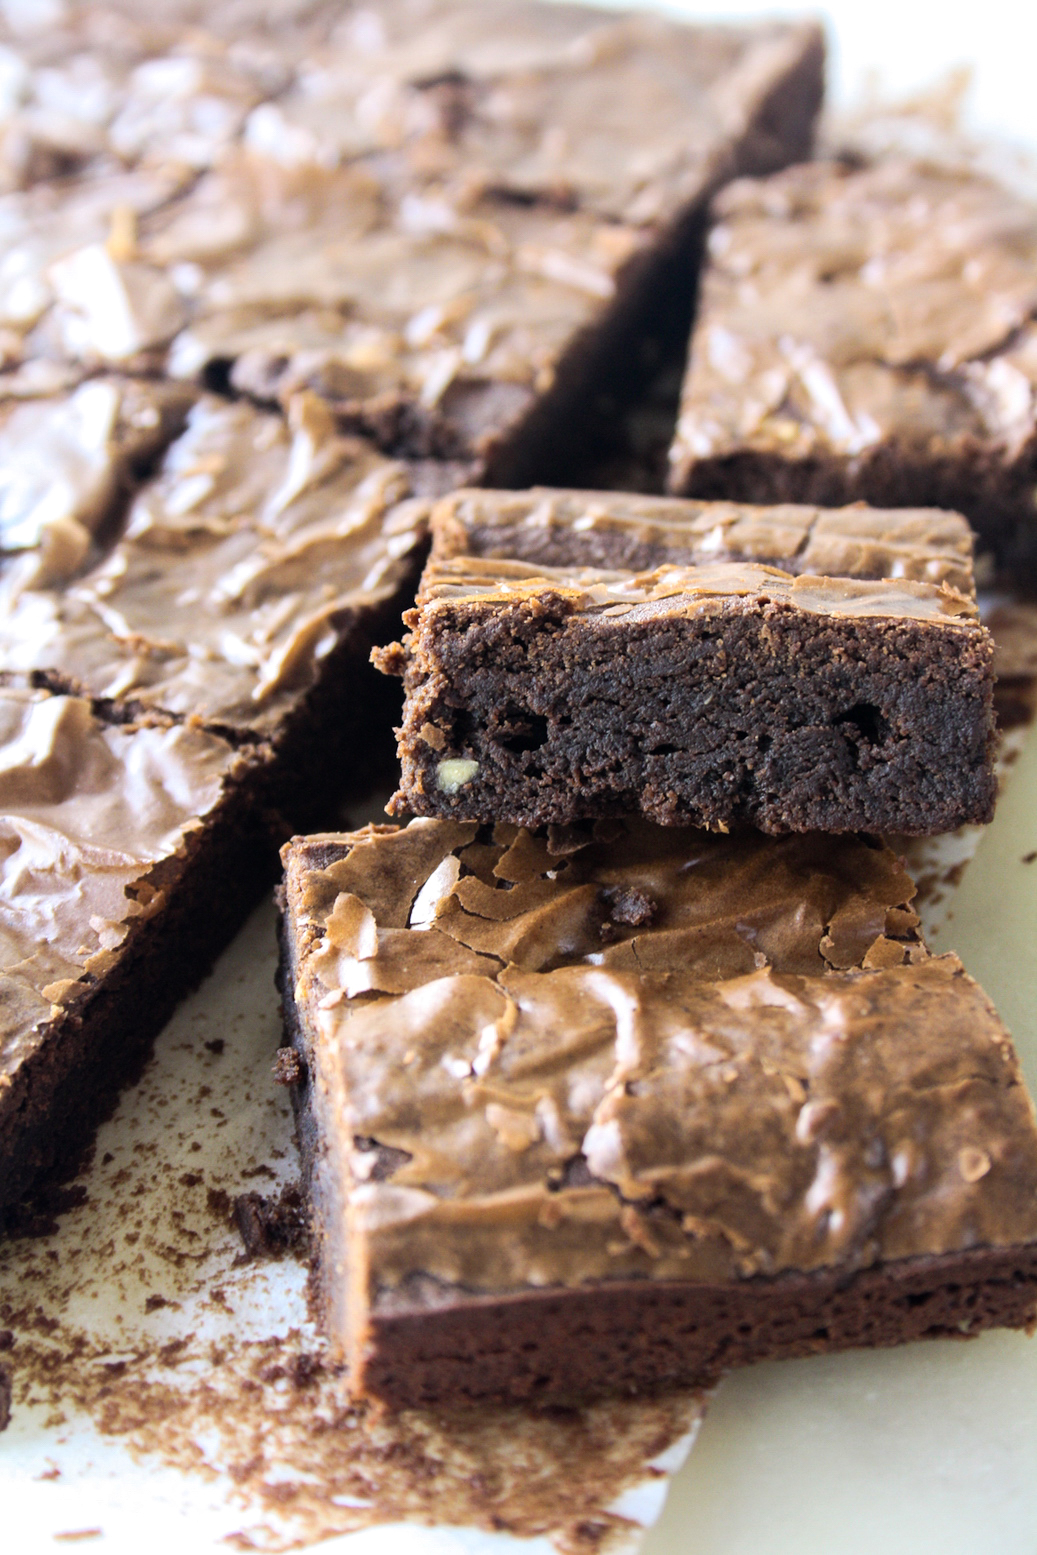 Chewy, fudgy chocolate brownies with crunchy peanut butter flavour